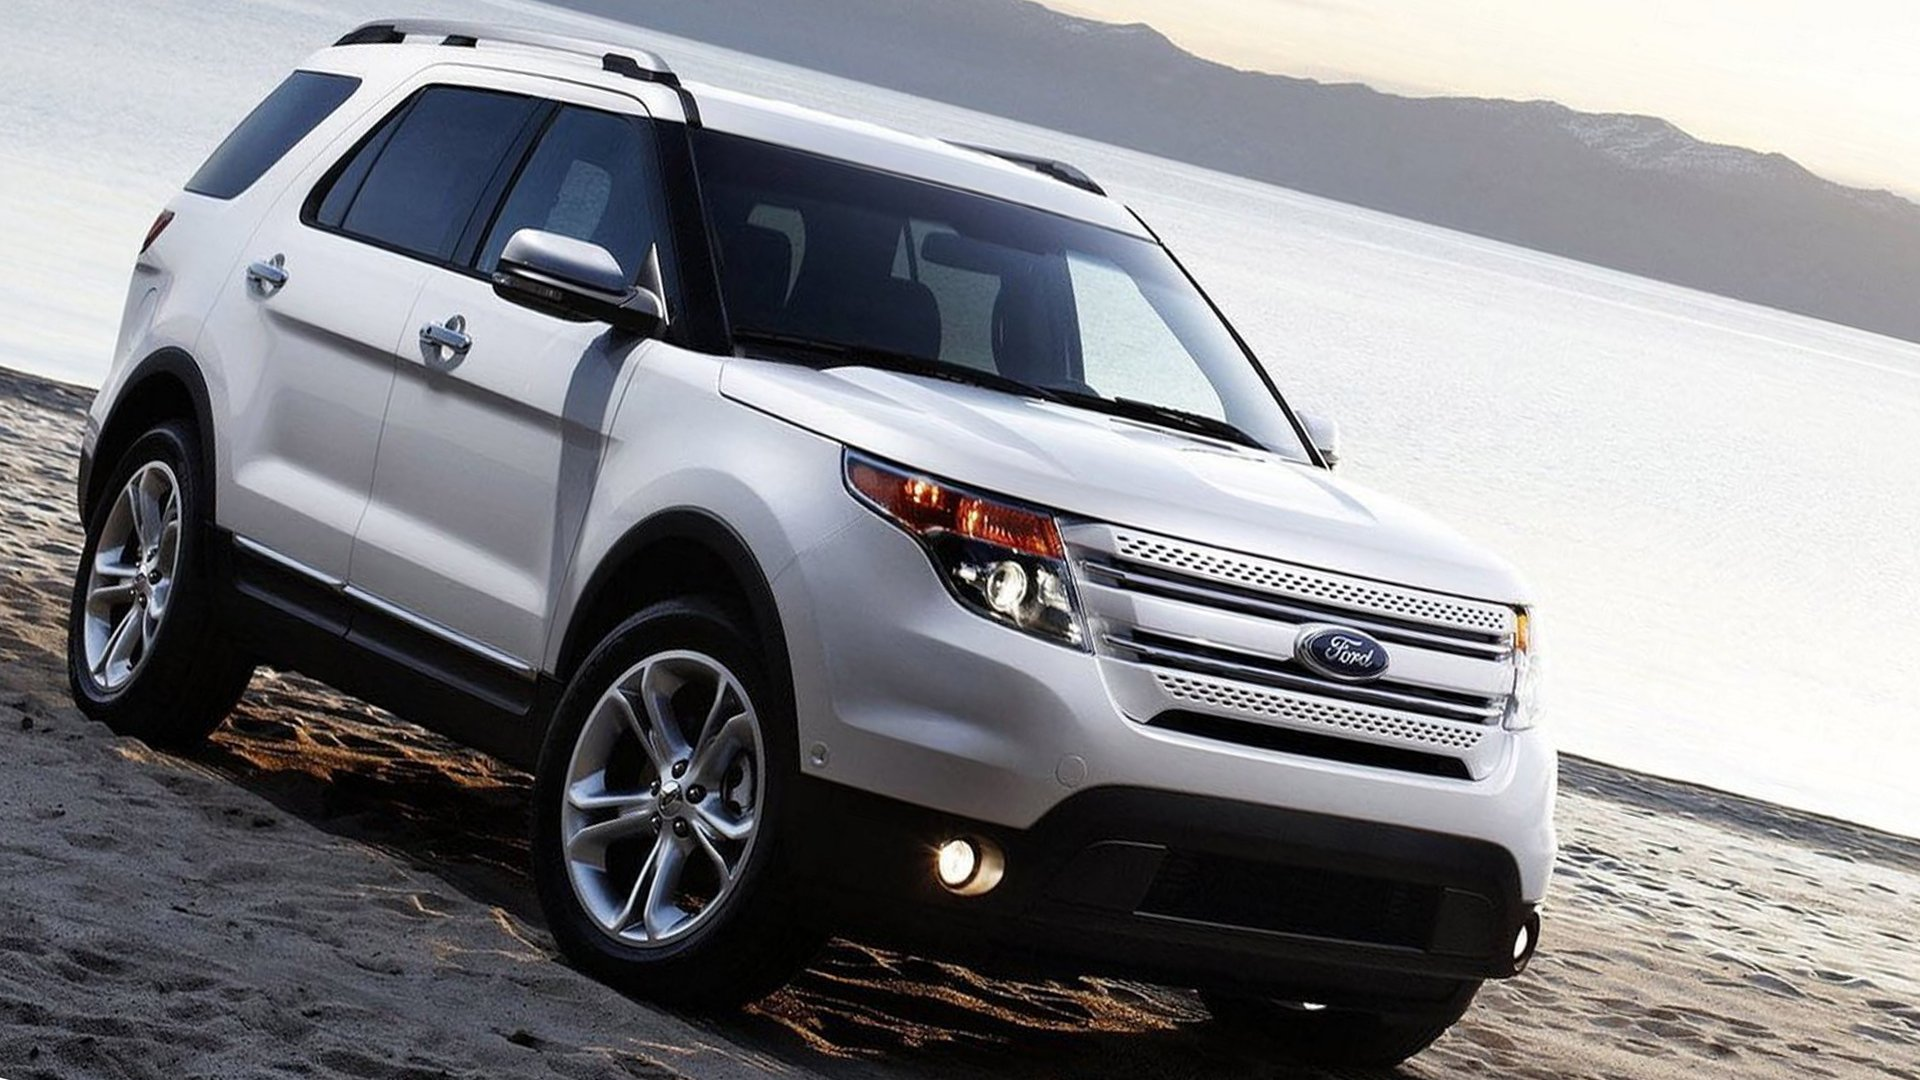 New 2019 Ford Explorer Wallpaper HD Desktop